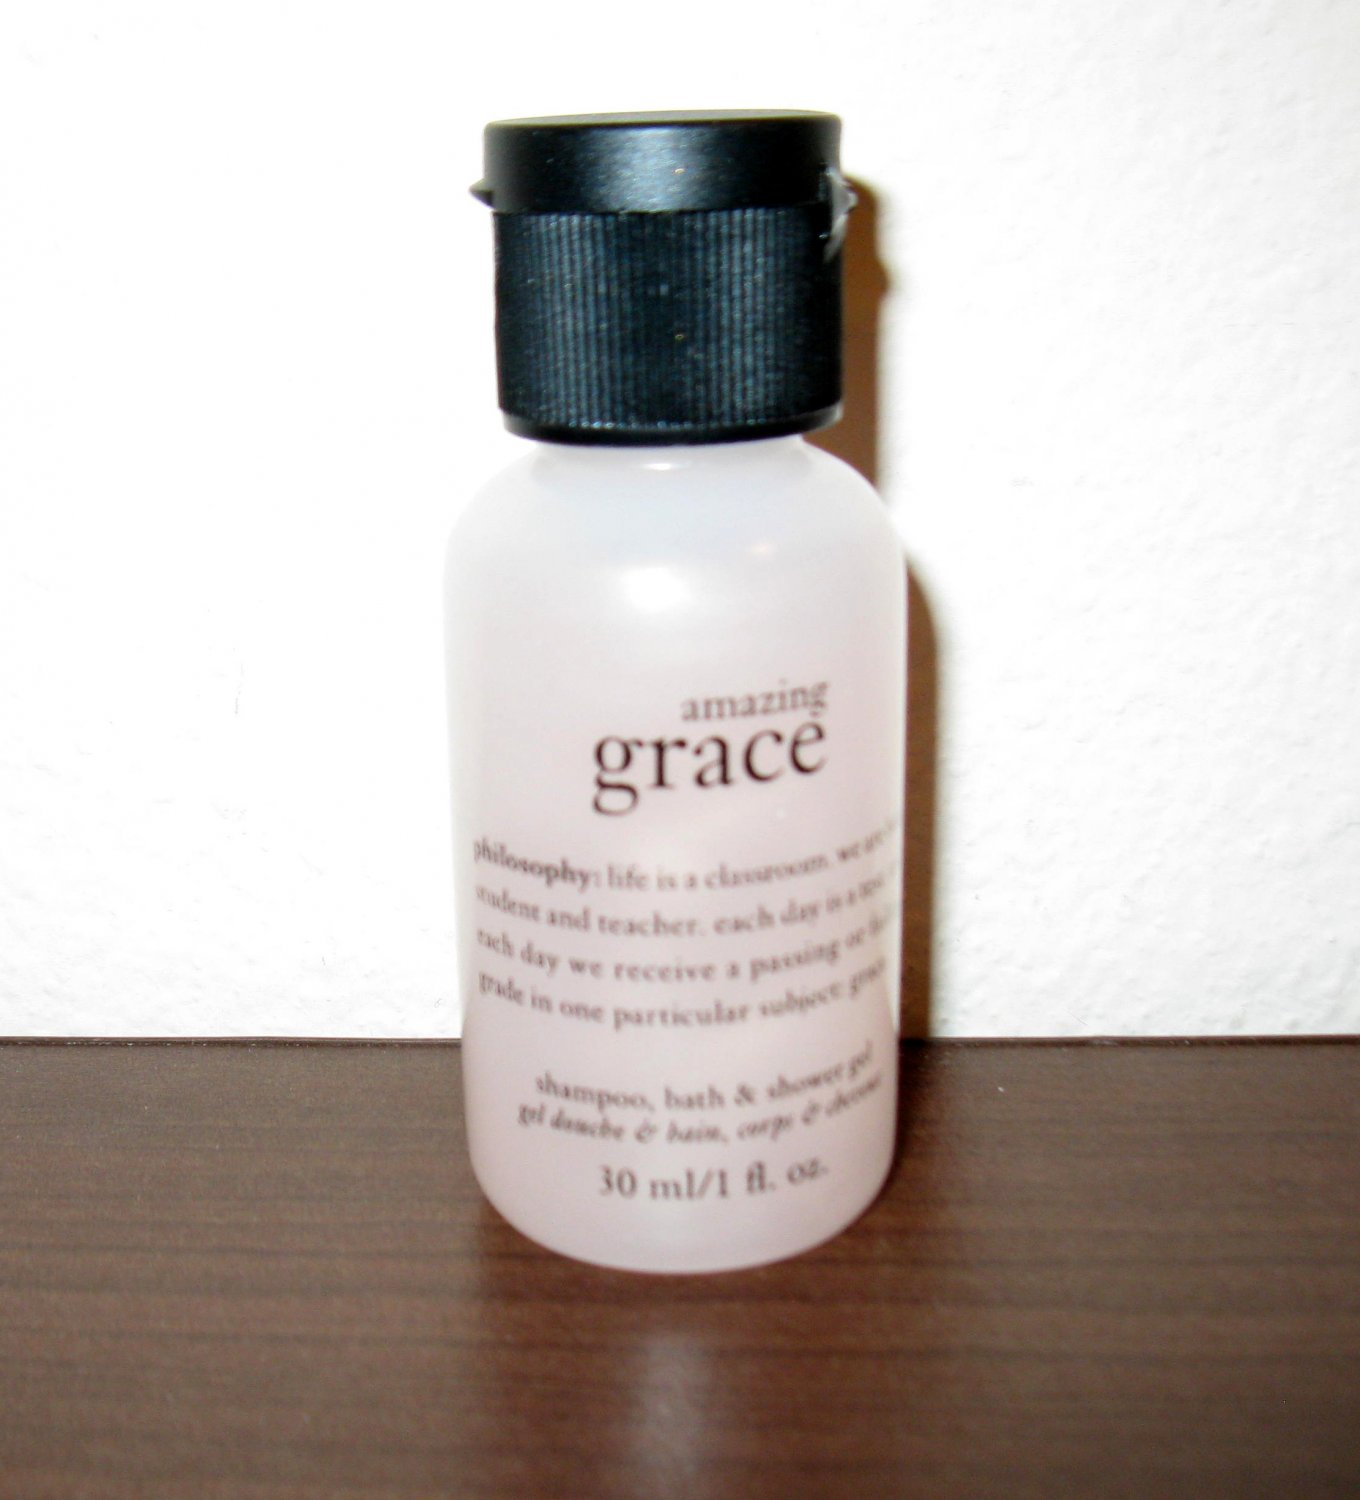 Philosophy AMAZING GRACE Travel Size 30ml/1 oz Shampoo Bath Shower Gel New #T997